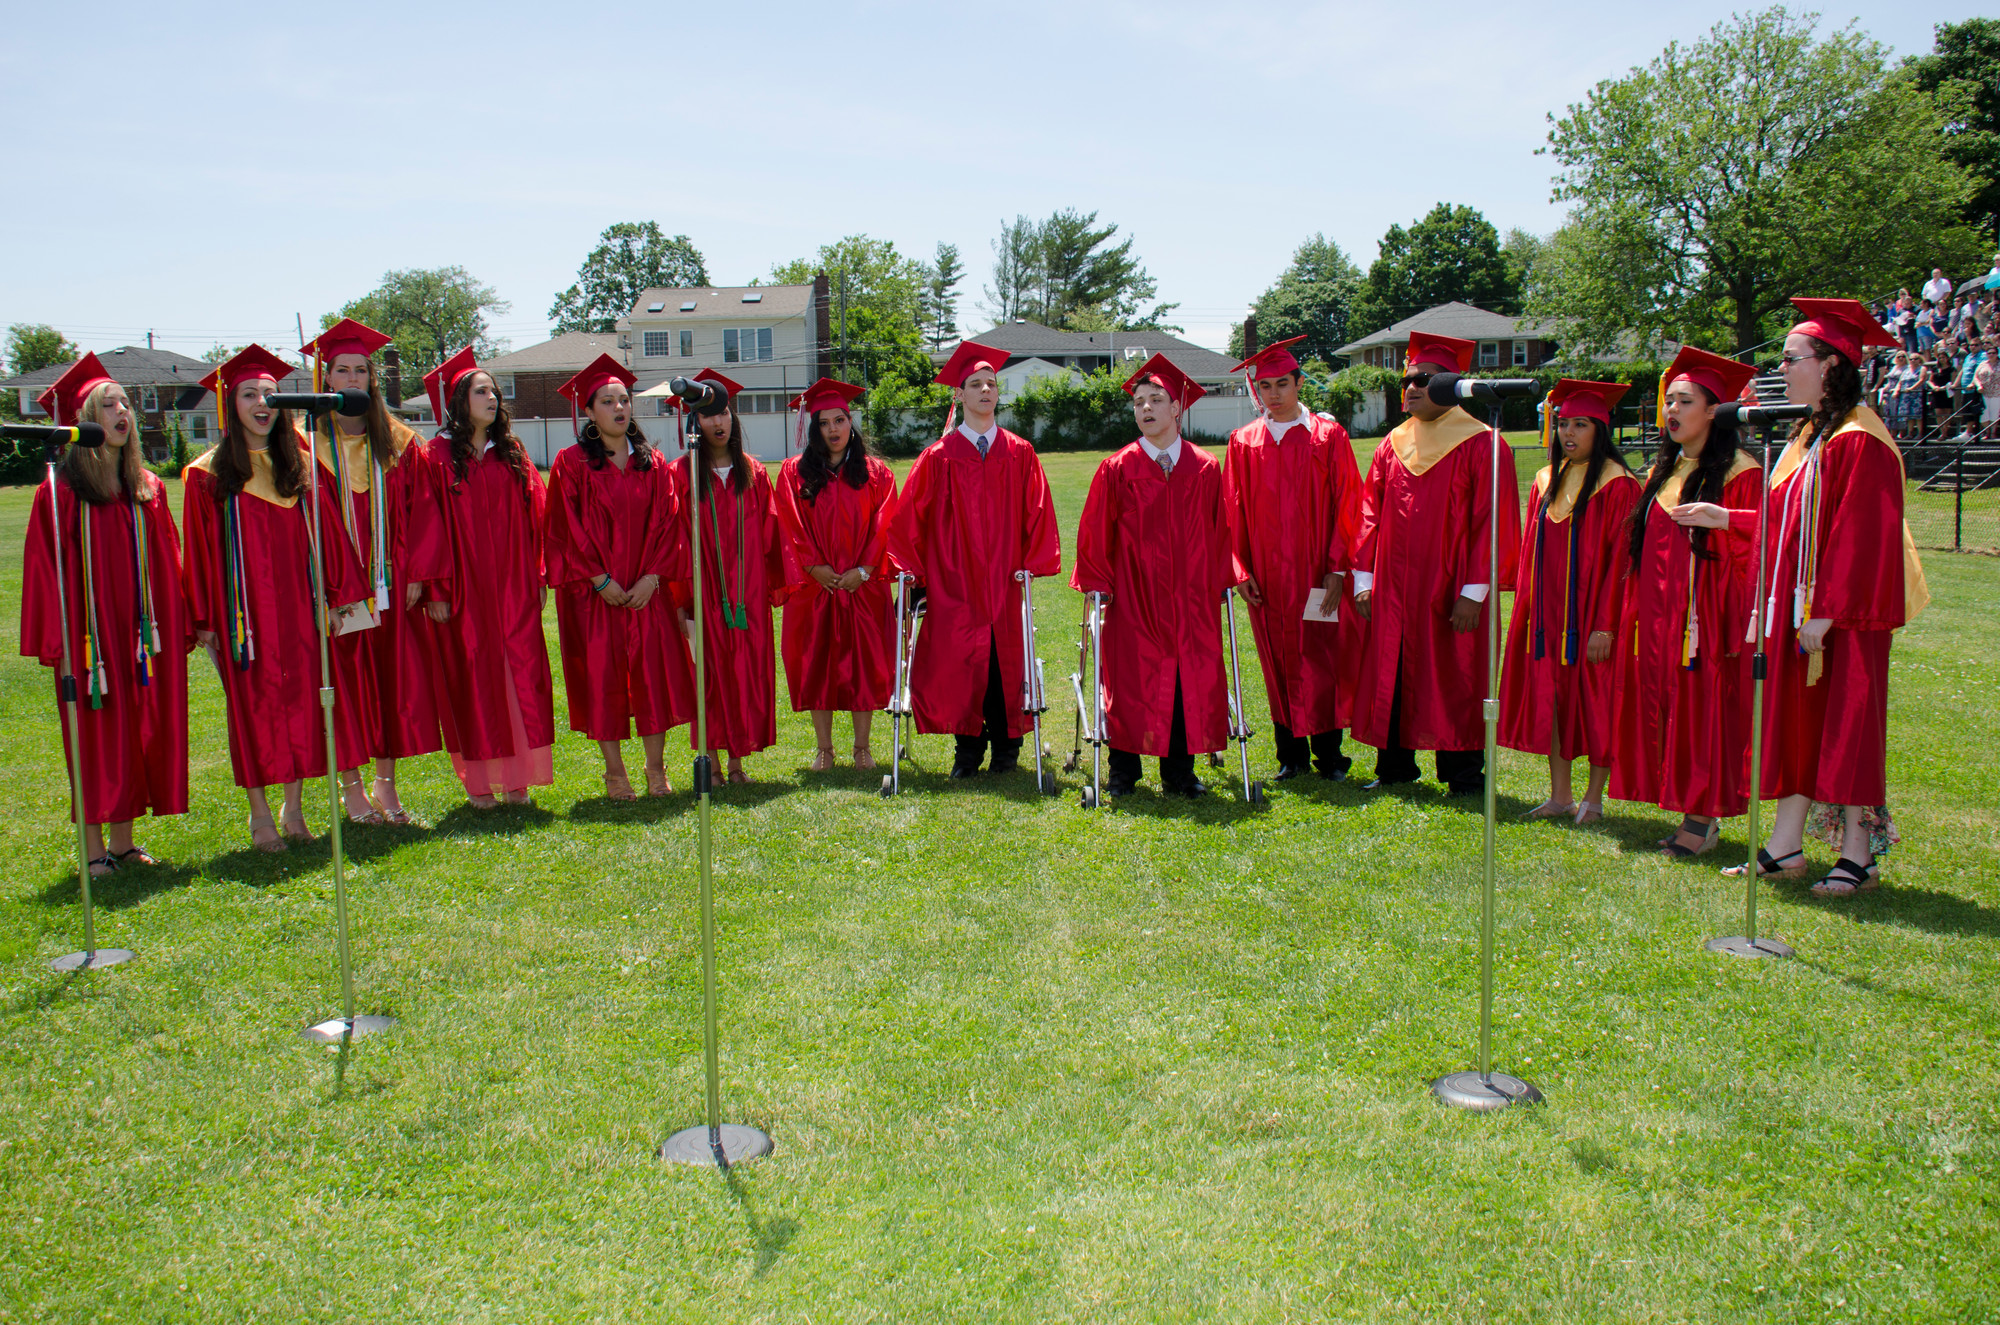 The senior chorus performed under sunny skies at the beginning of Sunday's graduation ceremony on the W.T. Clarke High School football field.